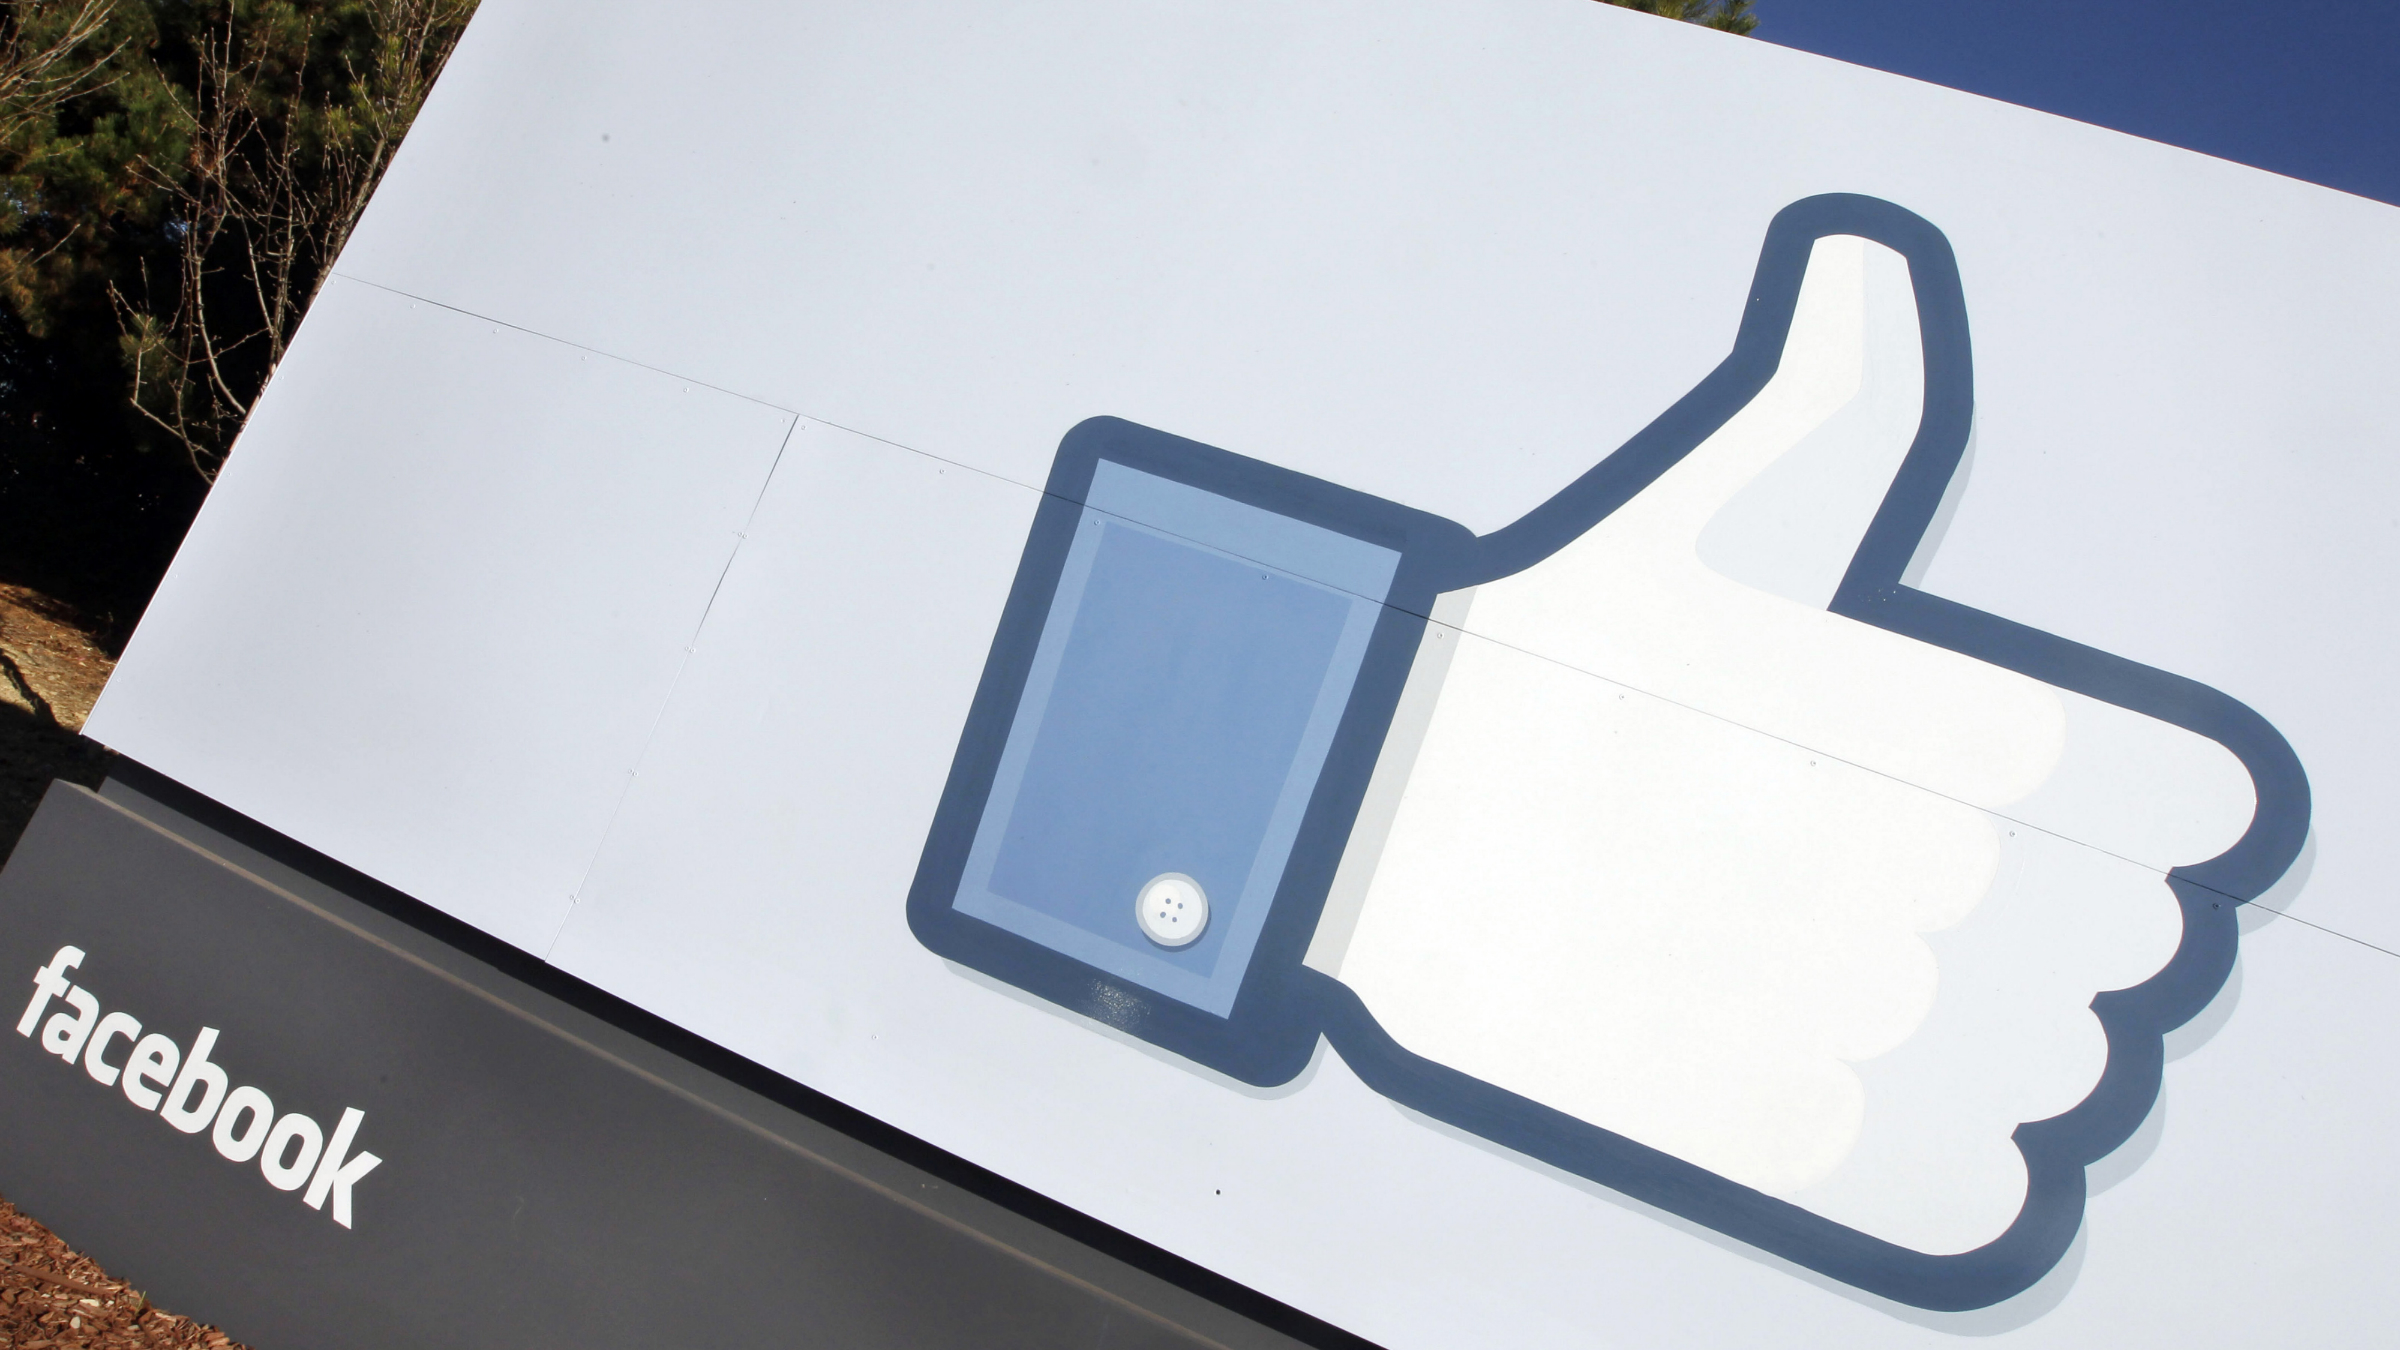 """A Jan. 12, 2012 file photo, shows the Facebook """"like"""" icon displayed outside of Facebook's headquarters in Menlo Park, Calif. The """"like"""" button on Facebook seems like a relatively clear way to express your support for something, but a federal judge says that doesn't mean clicking it is constitutionally protected speech. (AP Photo/Paul Sakuma)"""